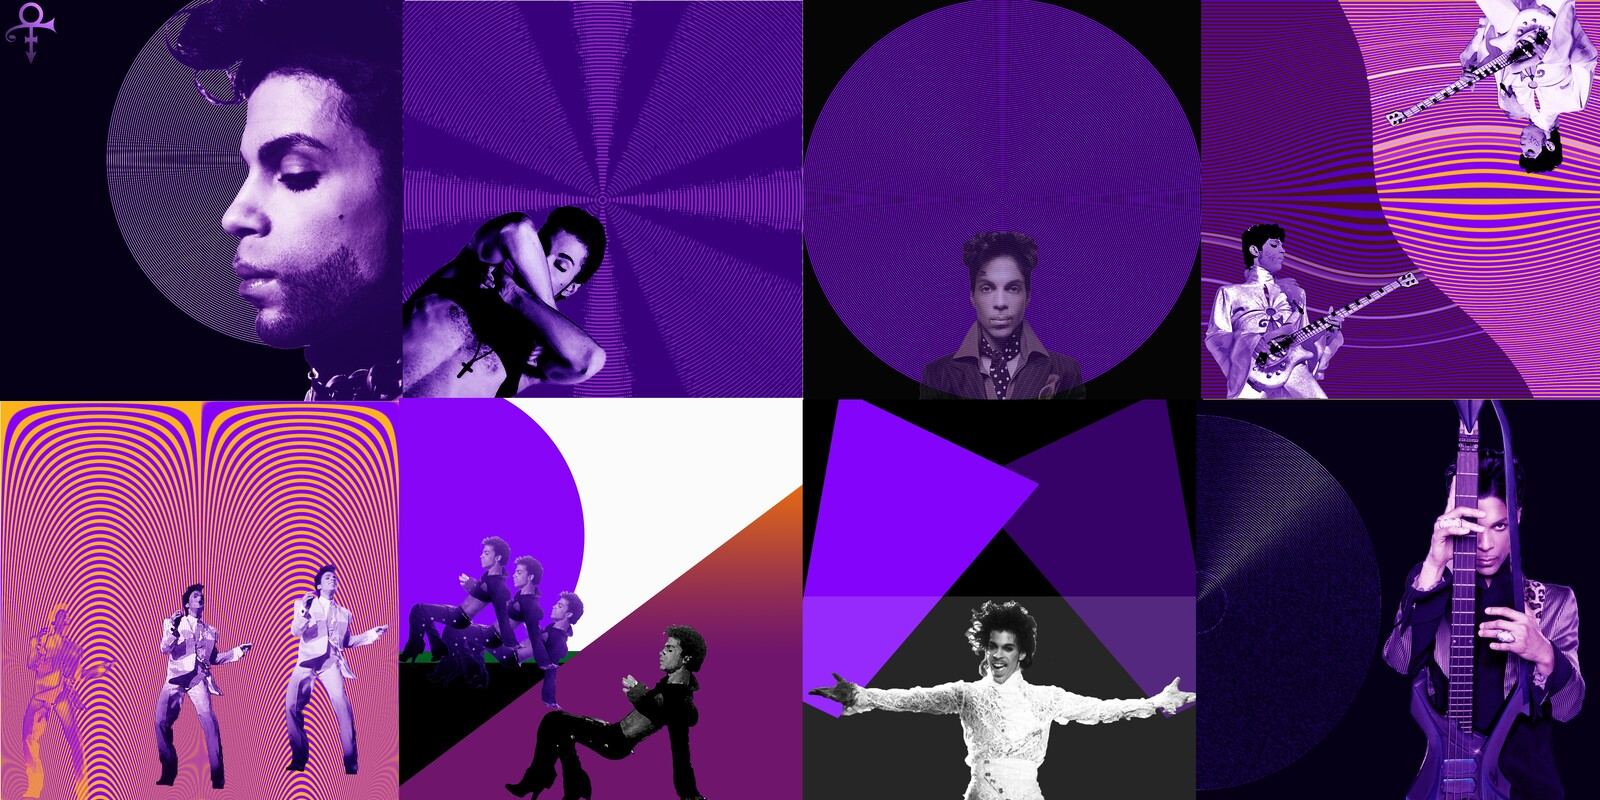 Made a cd foldout for Prince who is my favorite singer_Photoshop practice